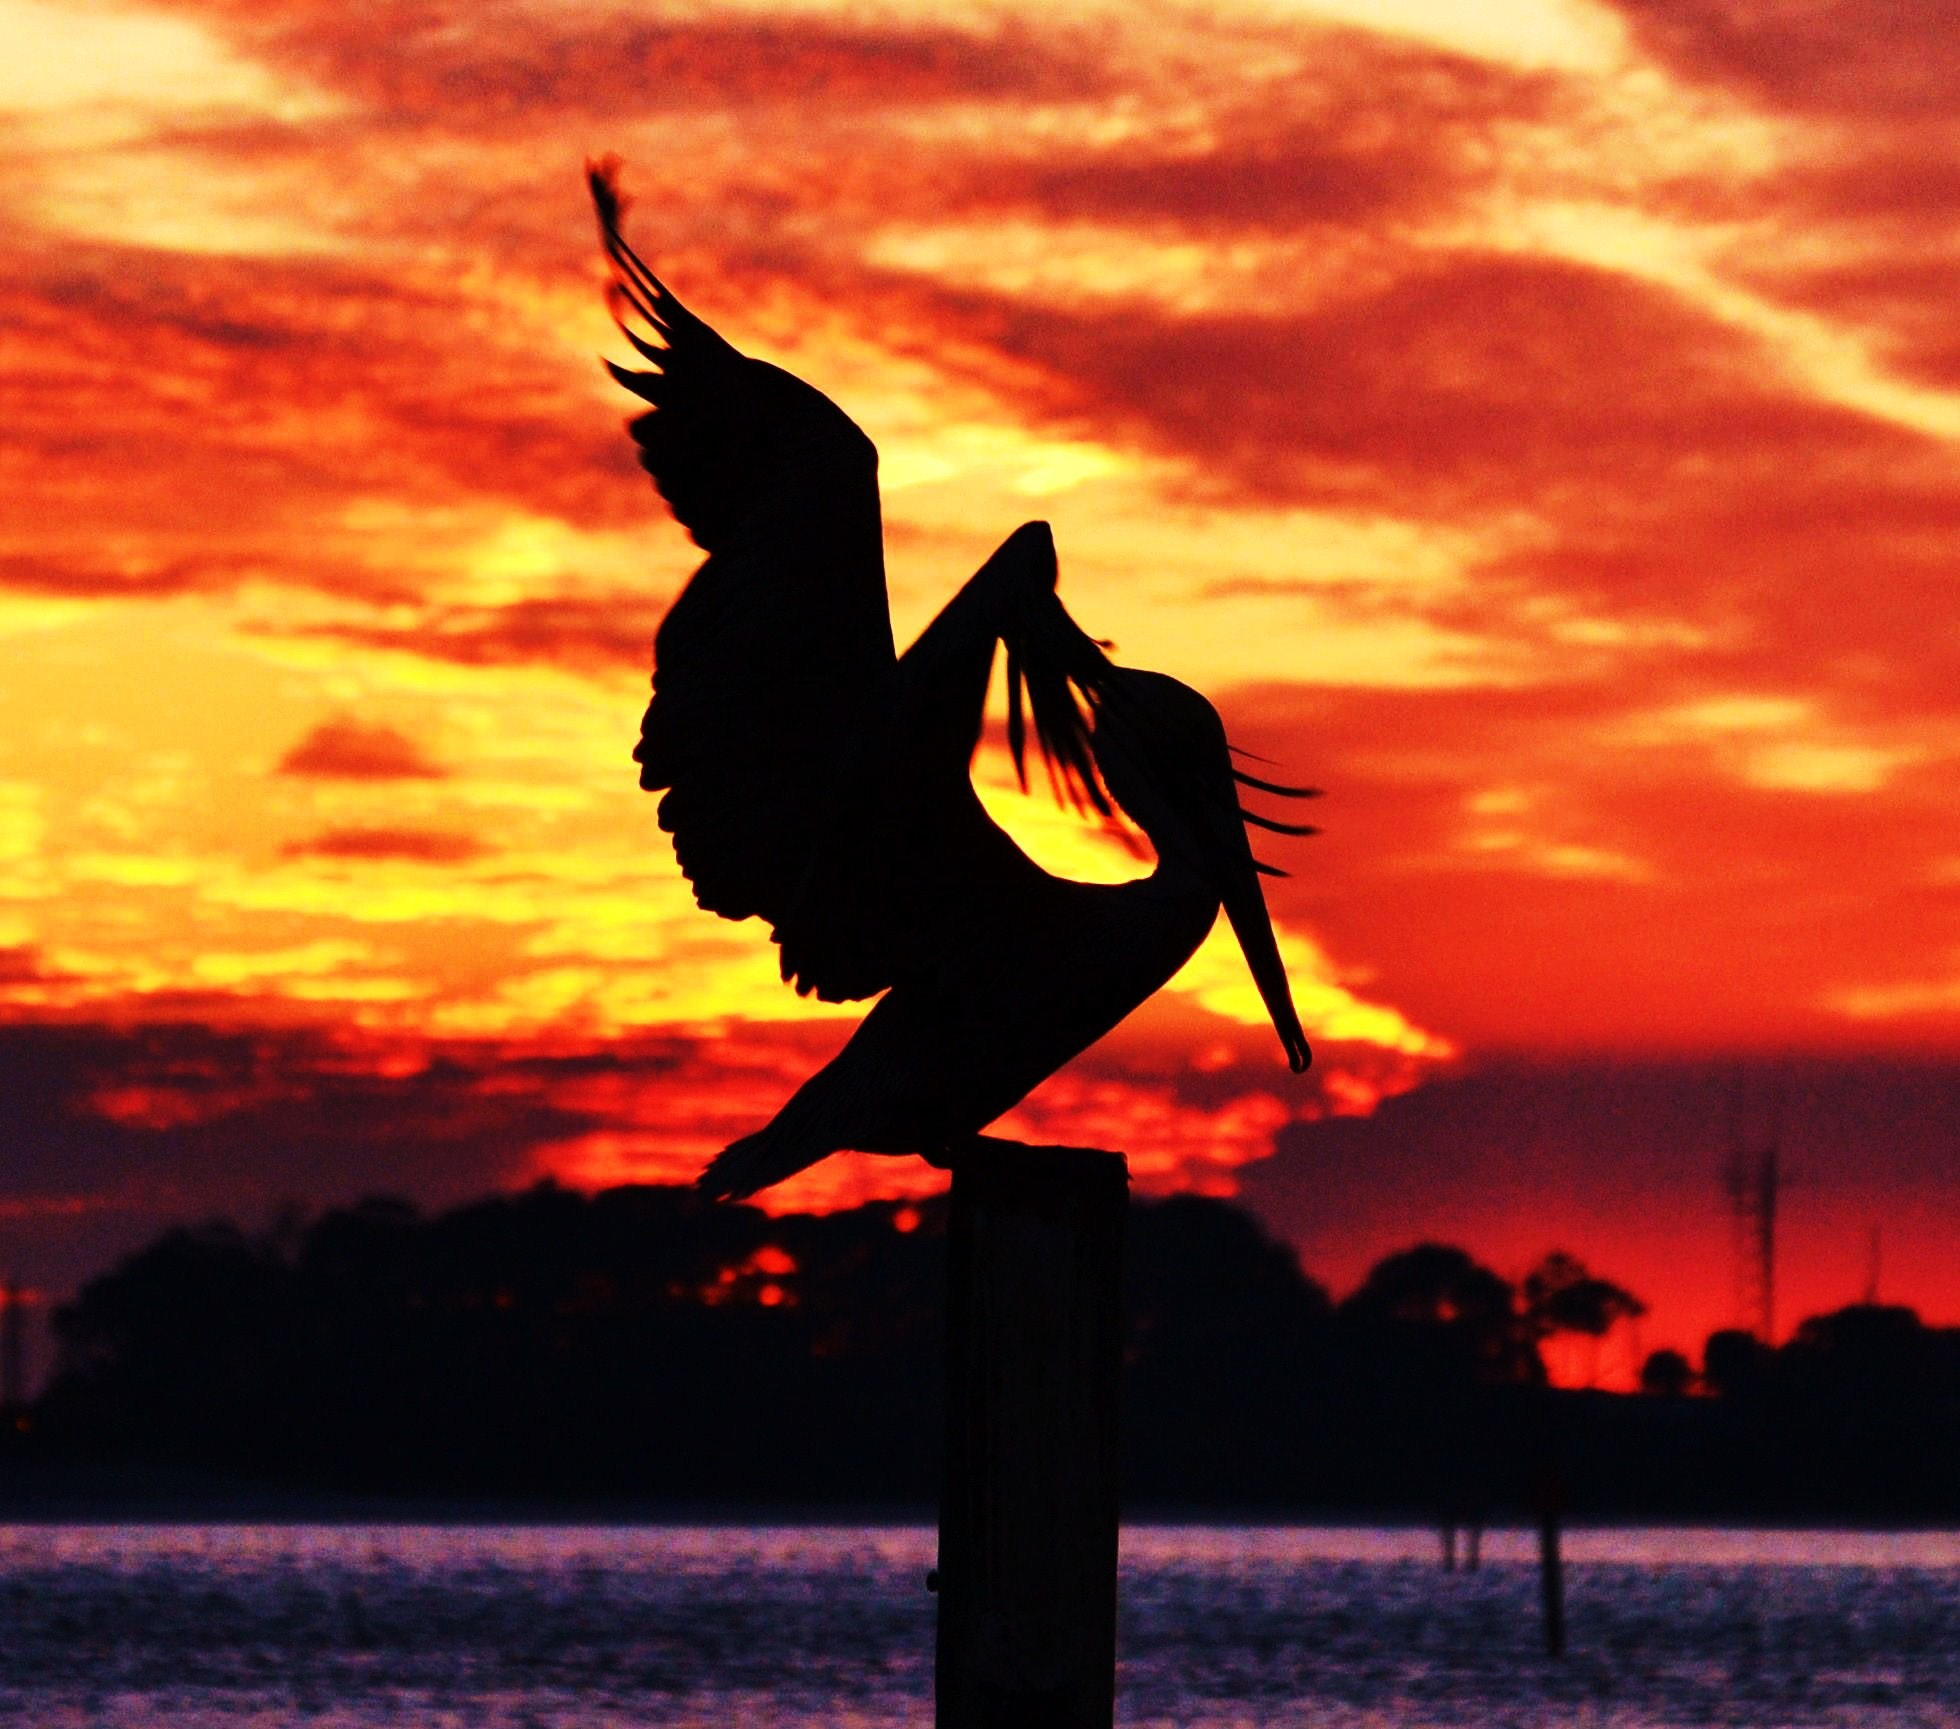 Photograph Pelican at Dusk by Michael Fitzsimmons on 500px